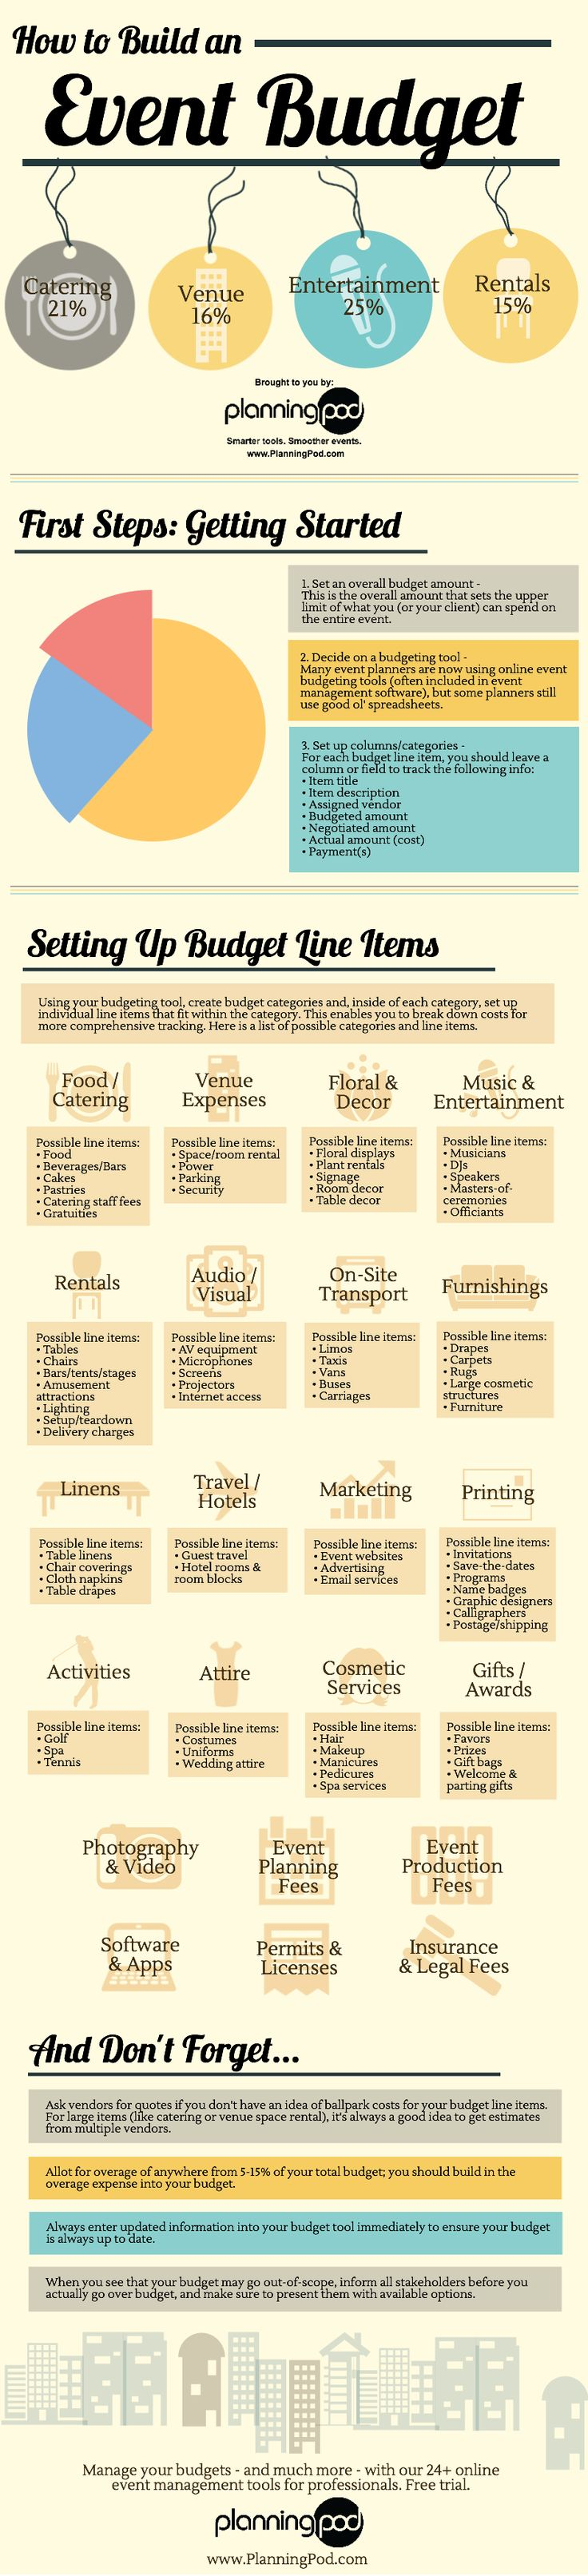 How to build an event budget - Infographic from Planning Pod. Useful for any student organization!